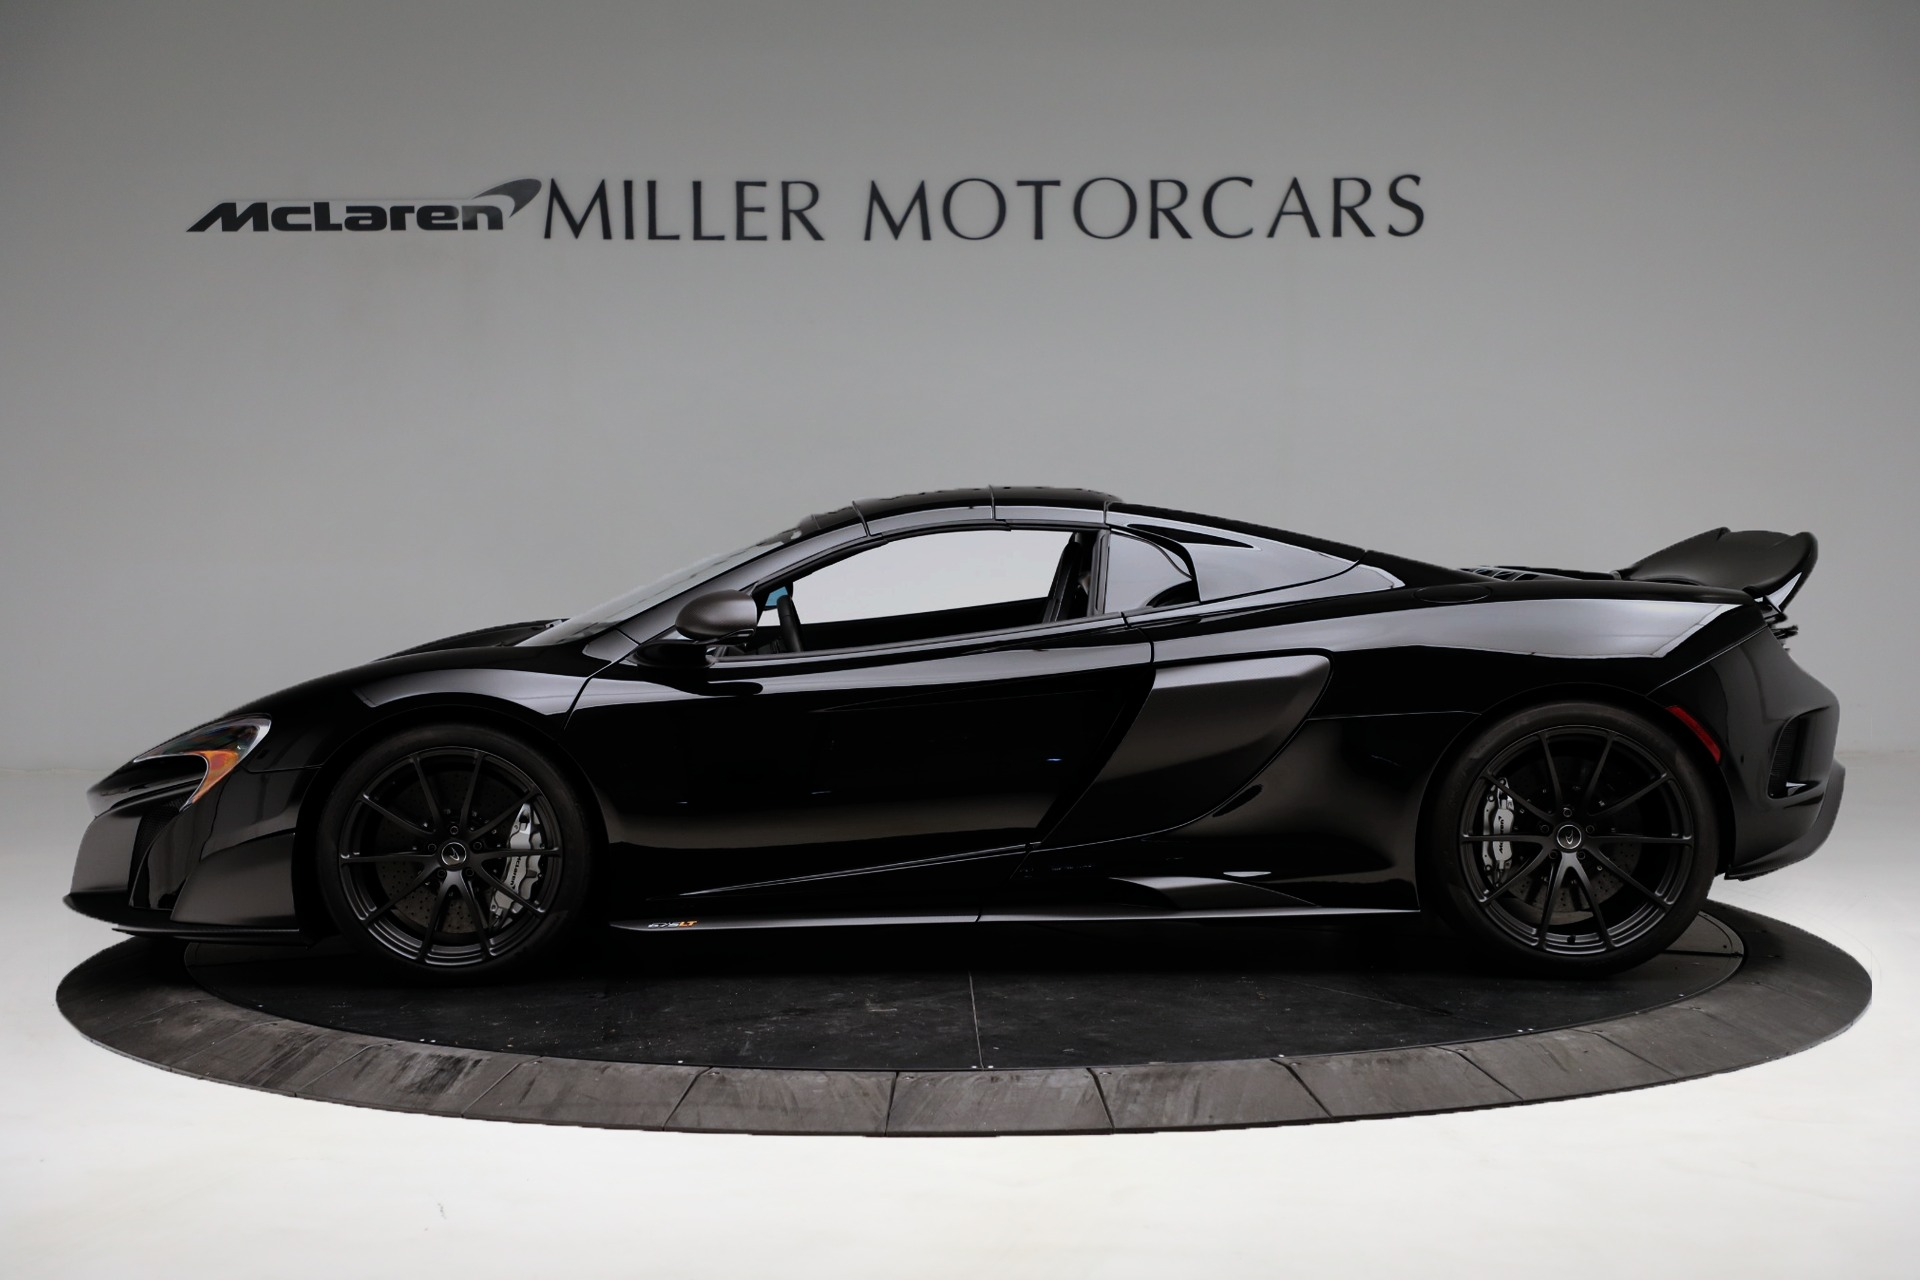 Used 2016 McLaren 675LT Spider For Sale In Westport, CT 3455_p14